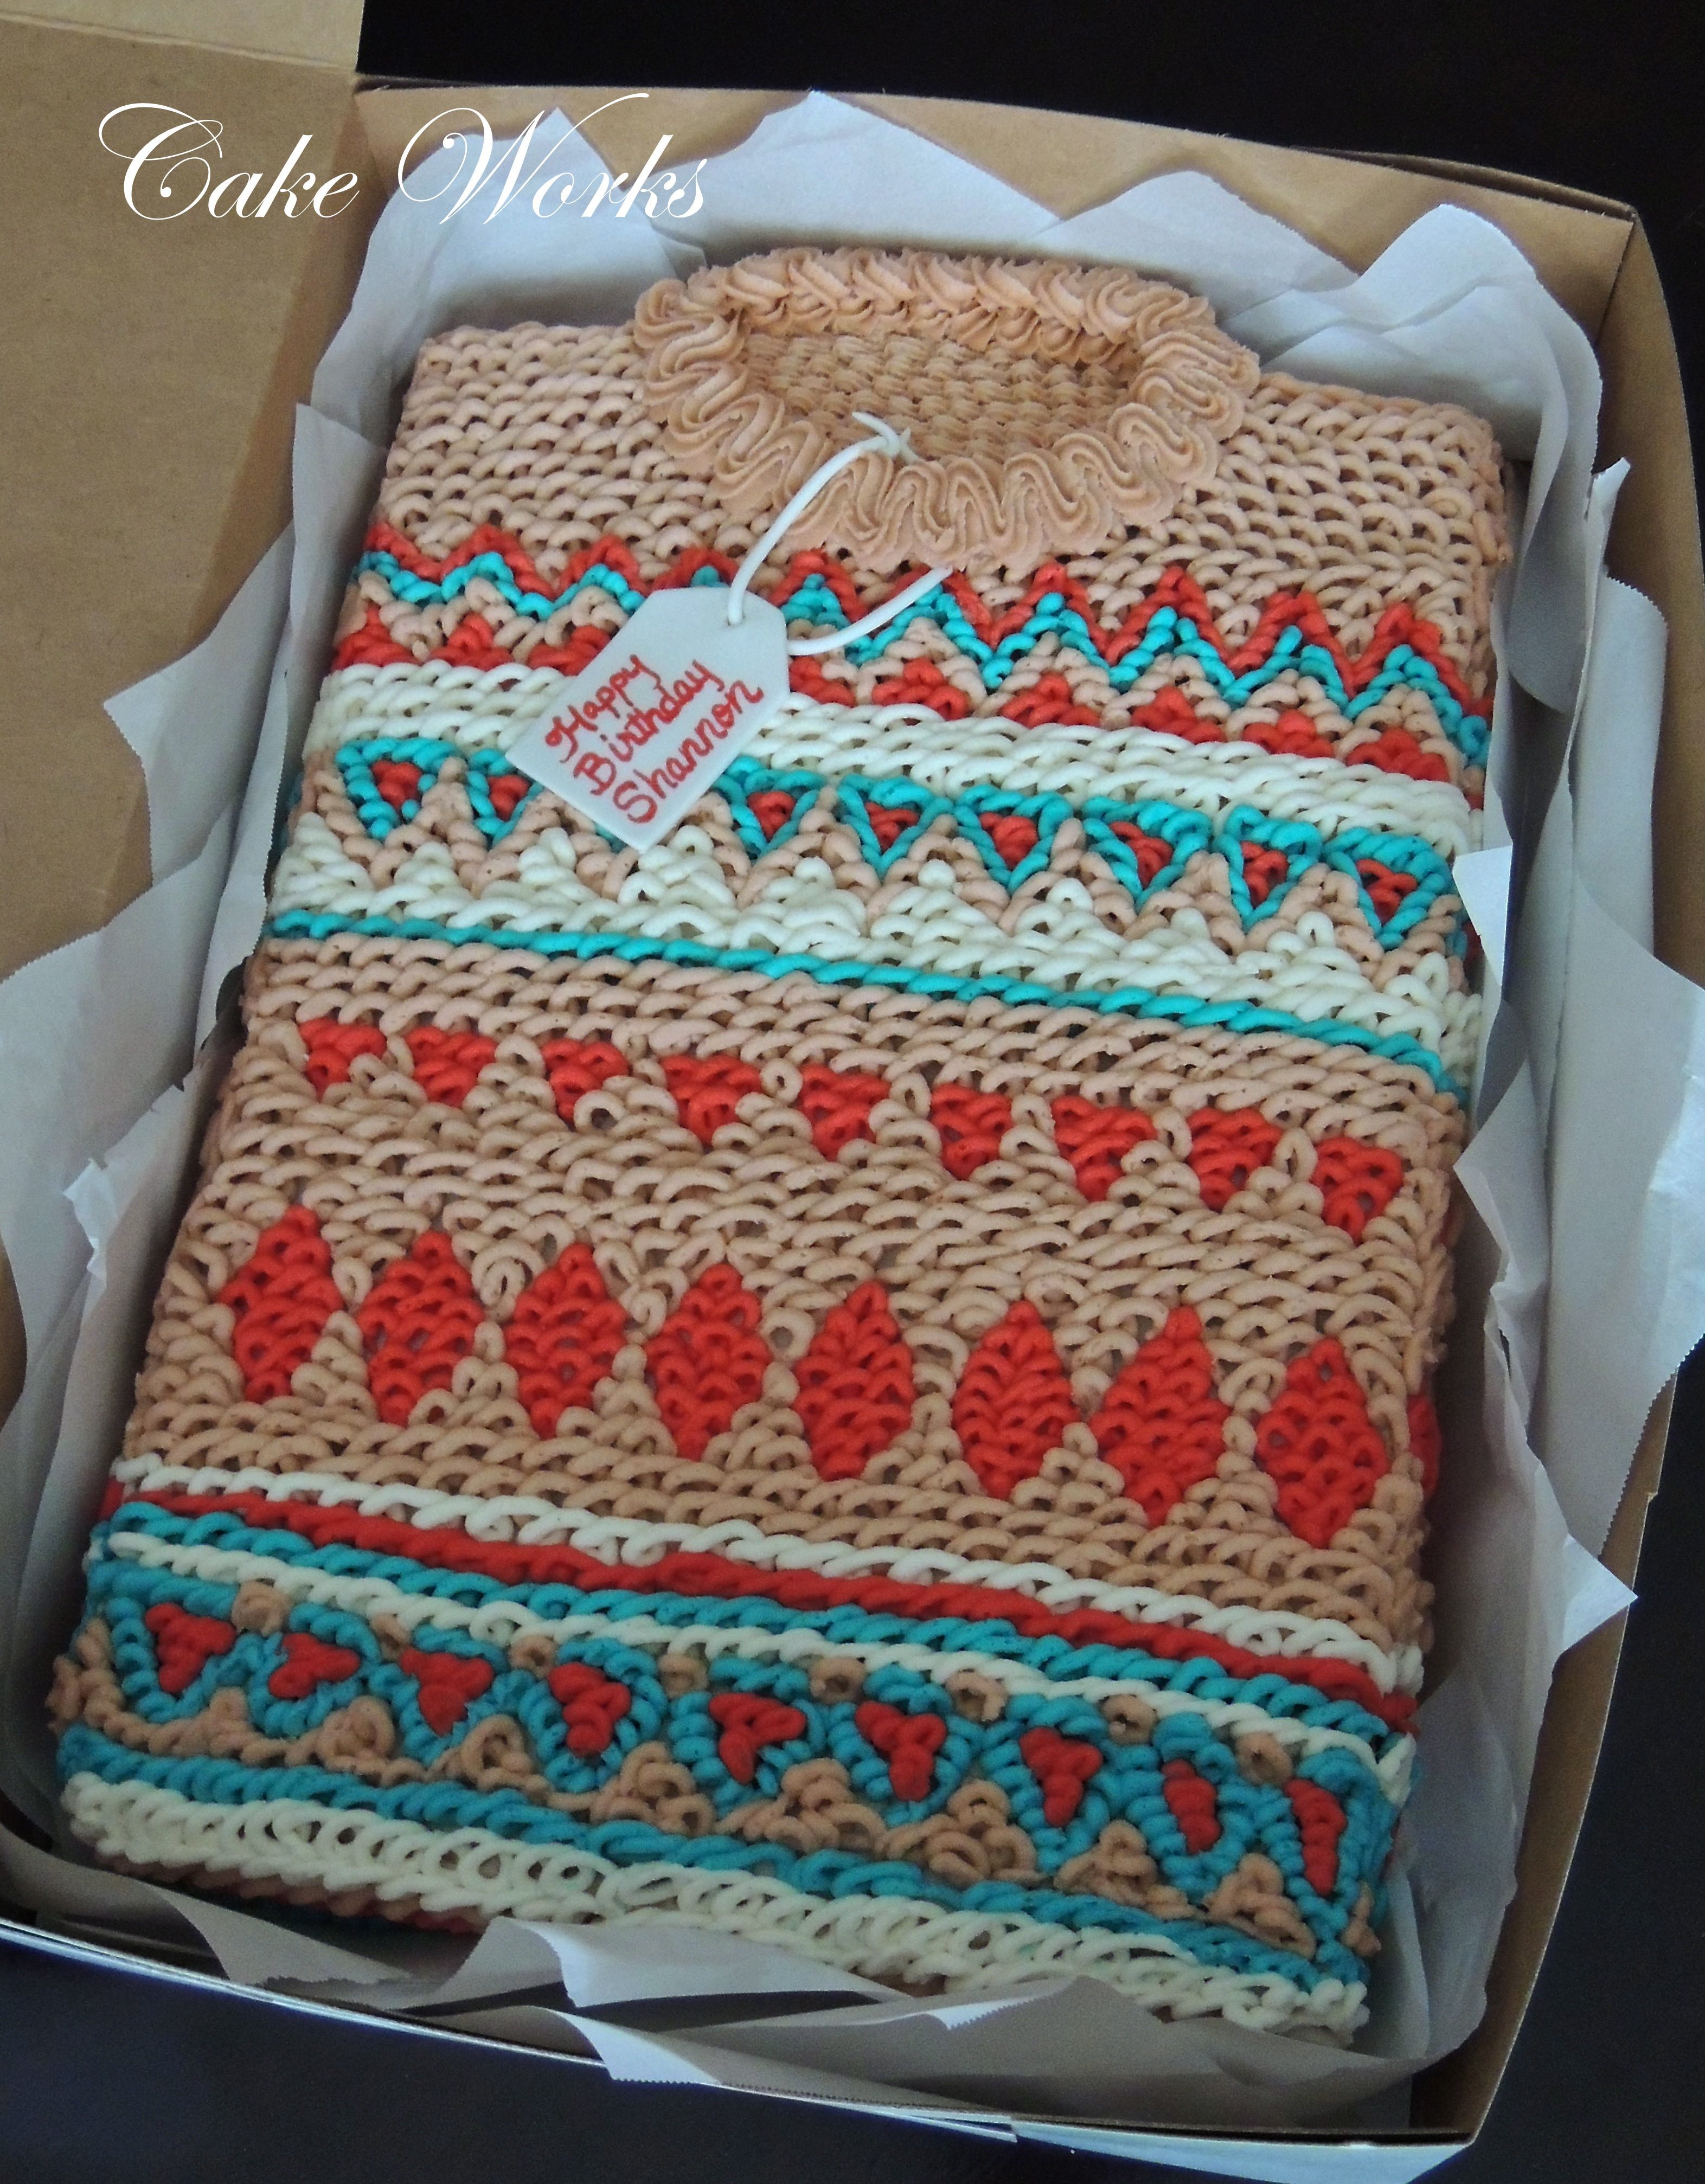 Ugly Sweater Cake Buttercream Sweater Cake For An Ugly Sweater